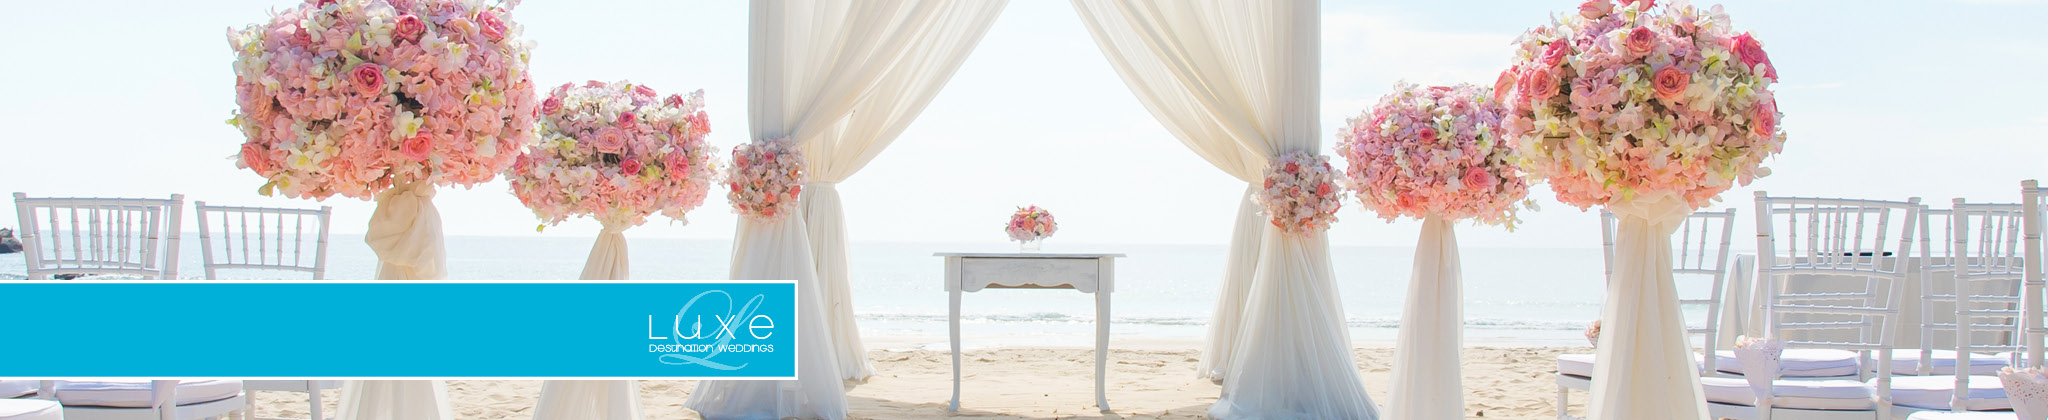 North America's largest destination wedding planning company